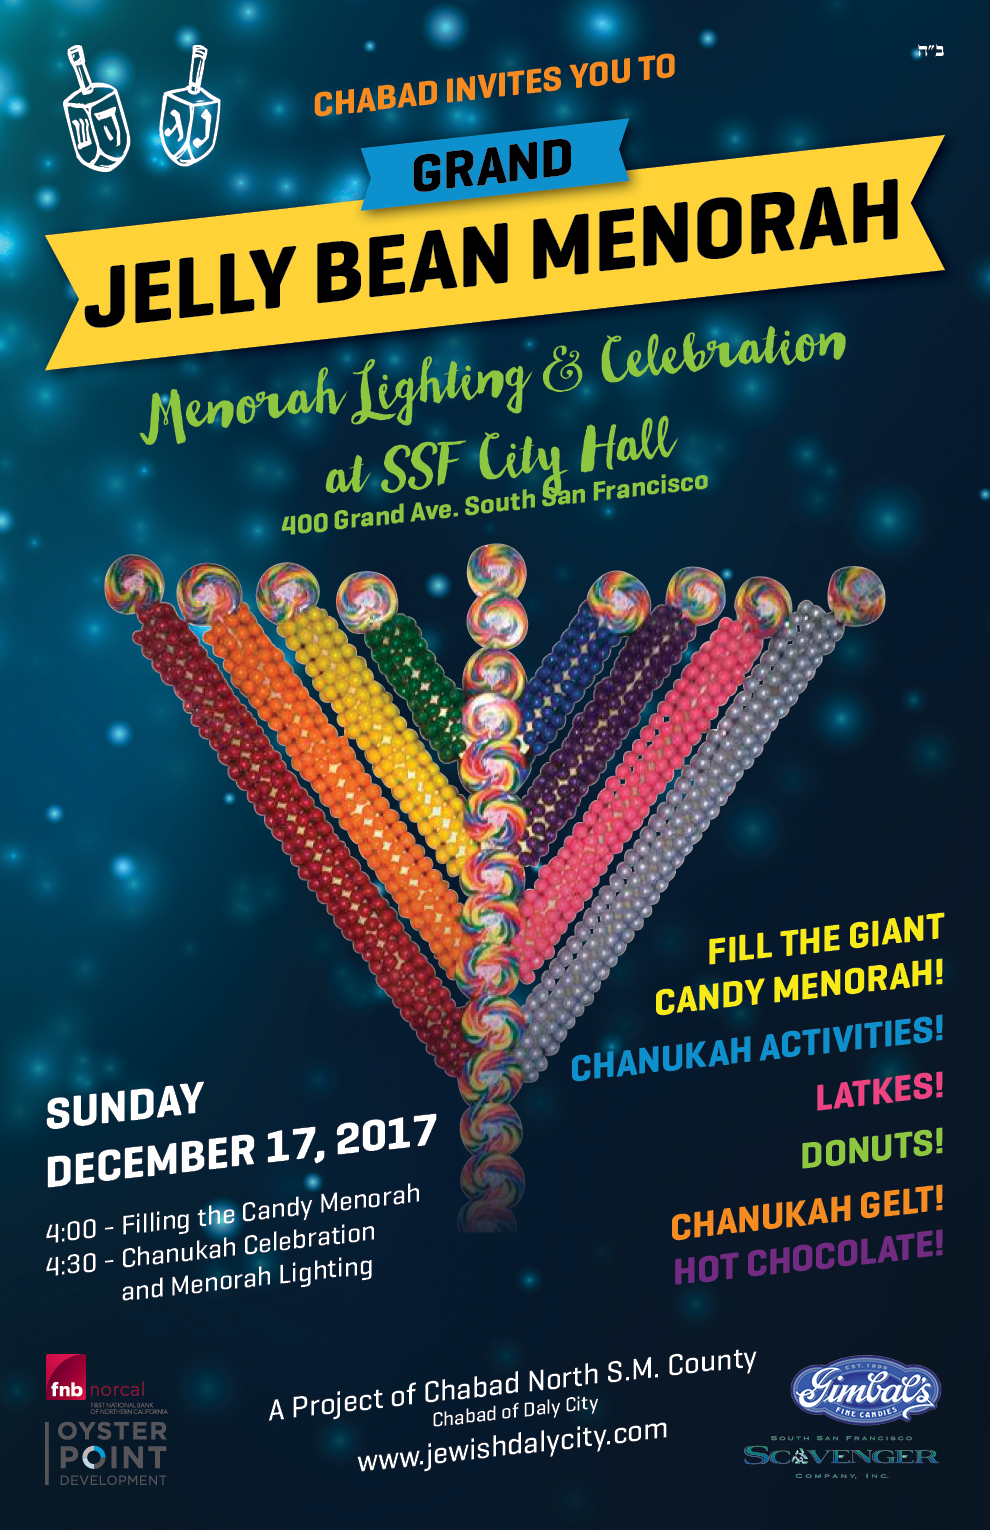 2nd Annual Menorah Lighting & Chanukah Celebration Set for Sunday Dec 17 at SSF City Hall